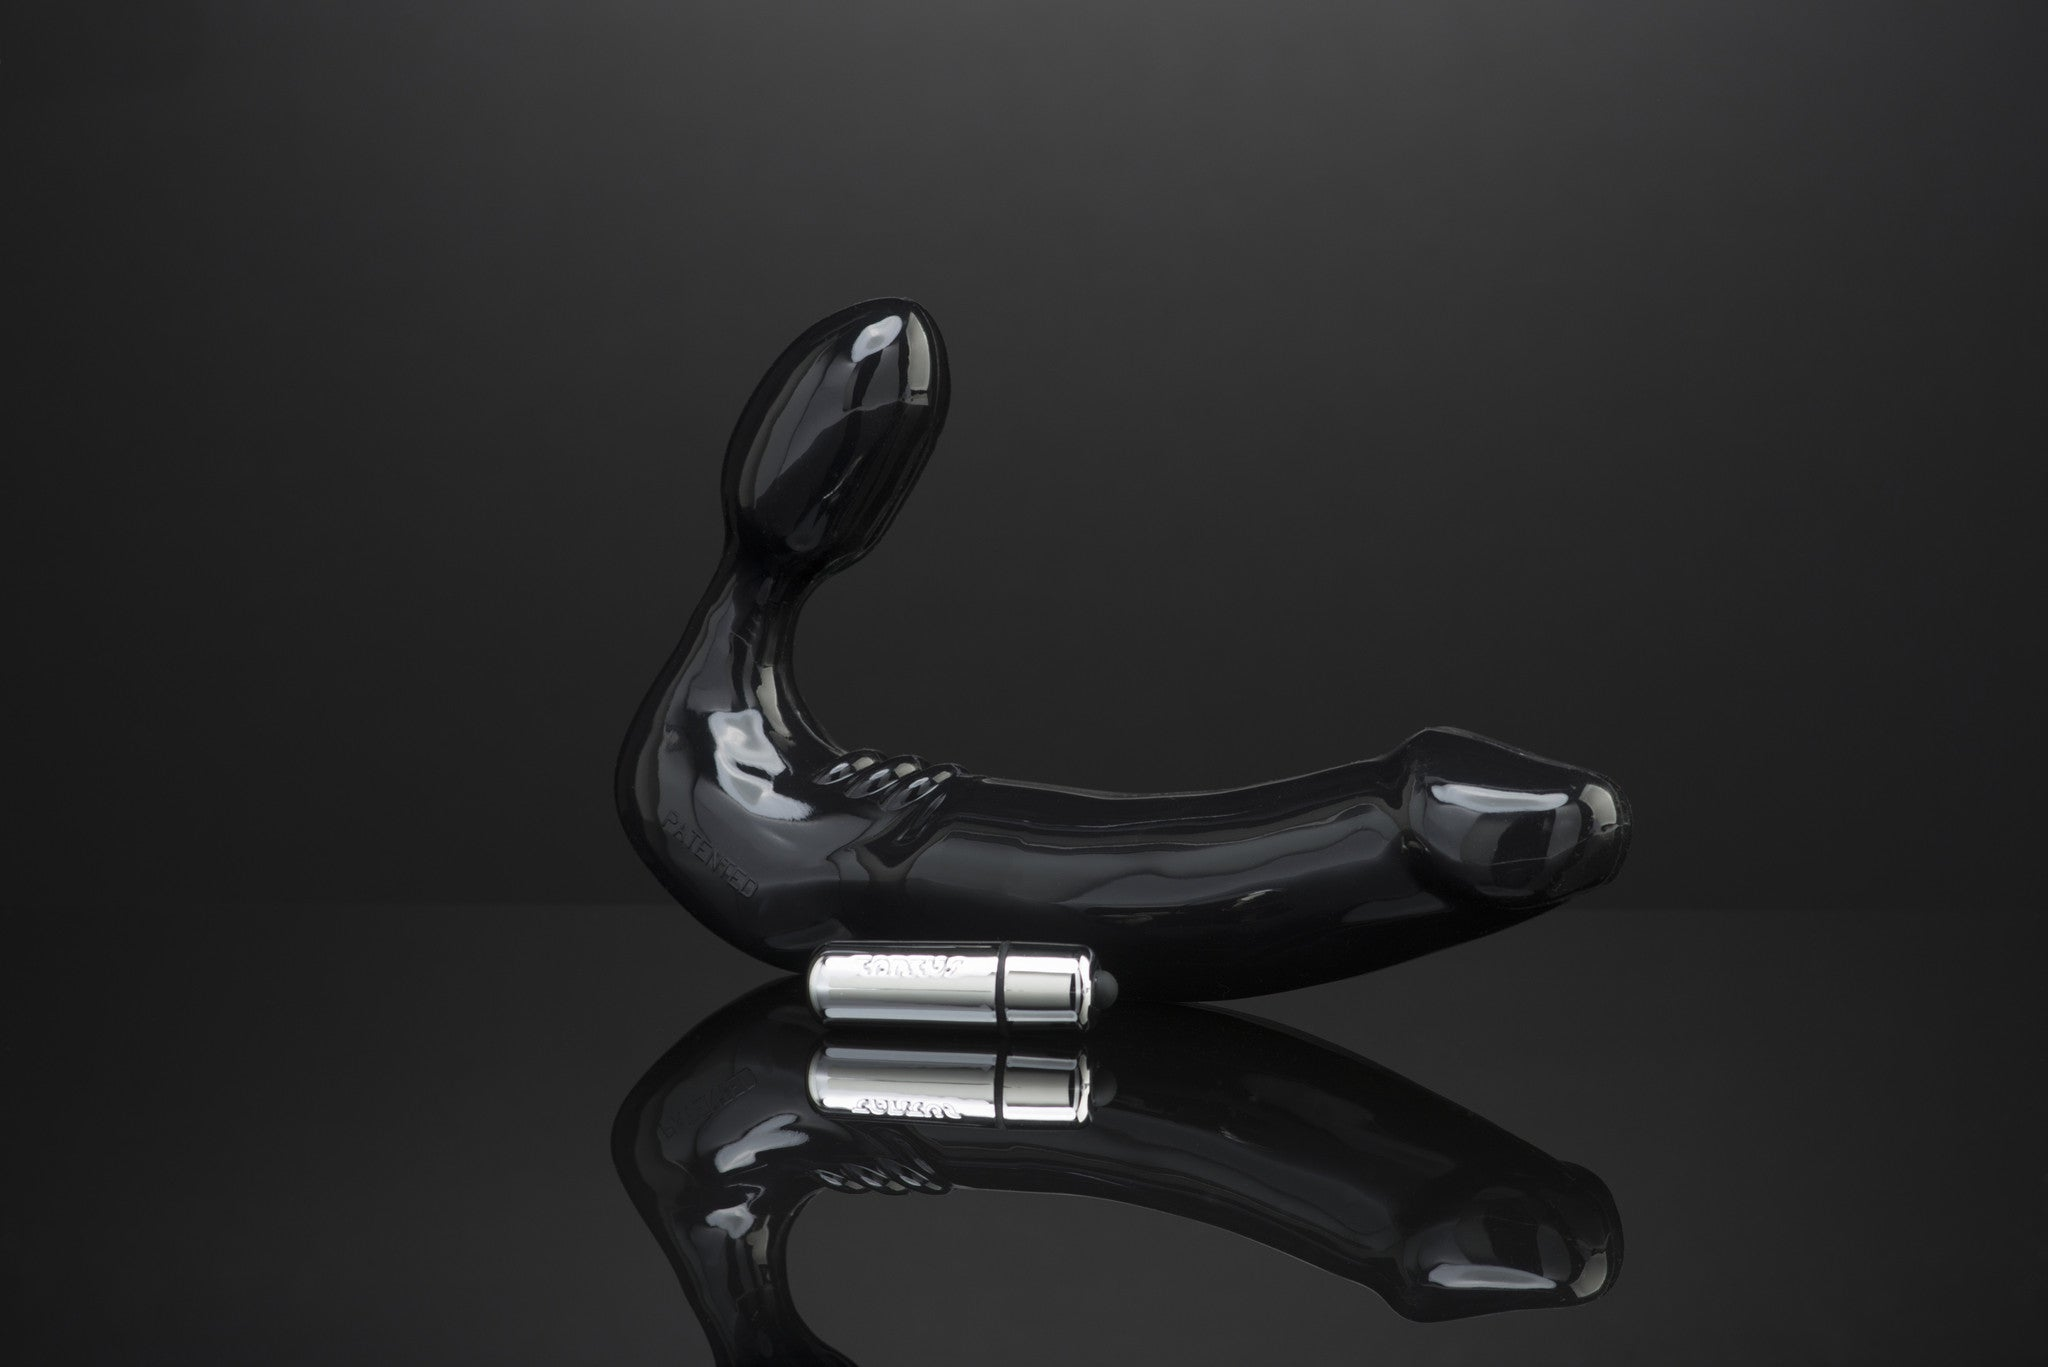 The Feeldoe Stout by Tantus